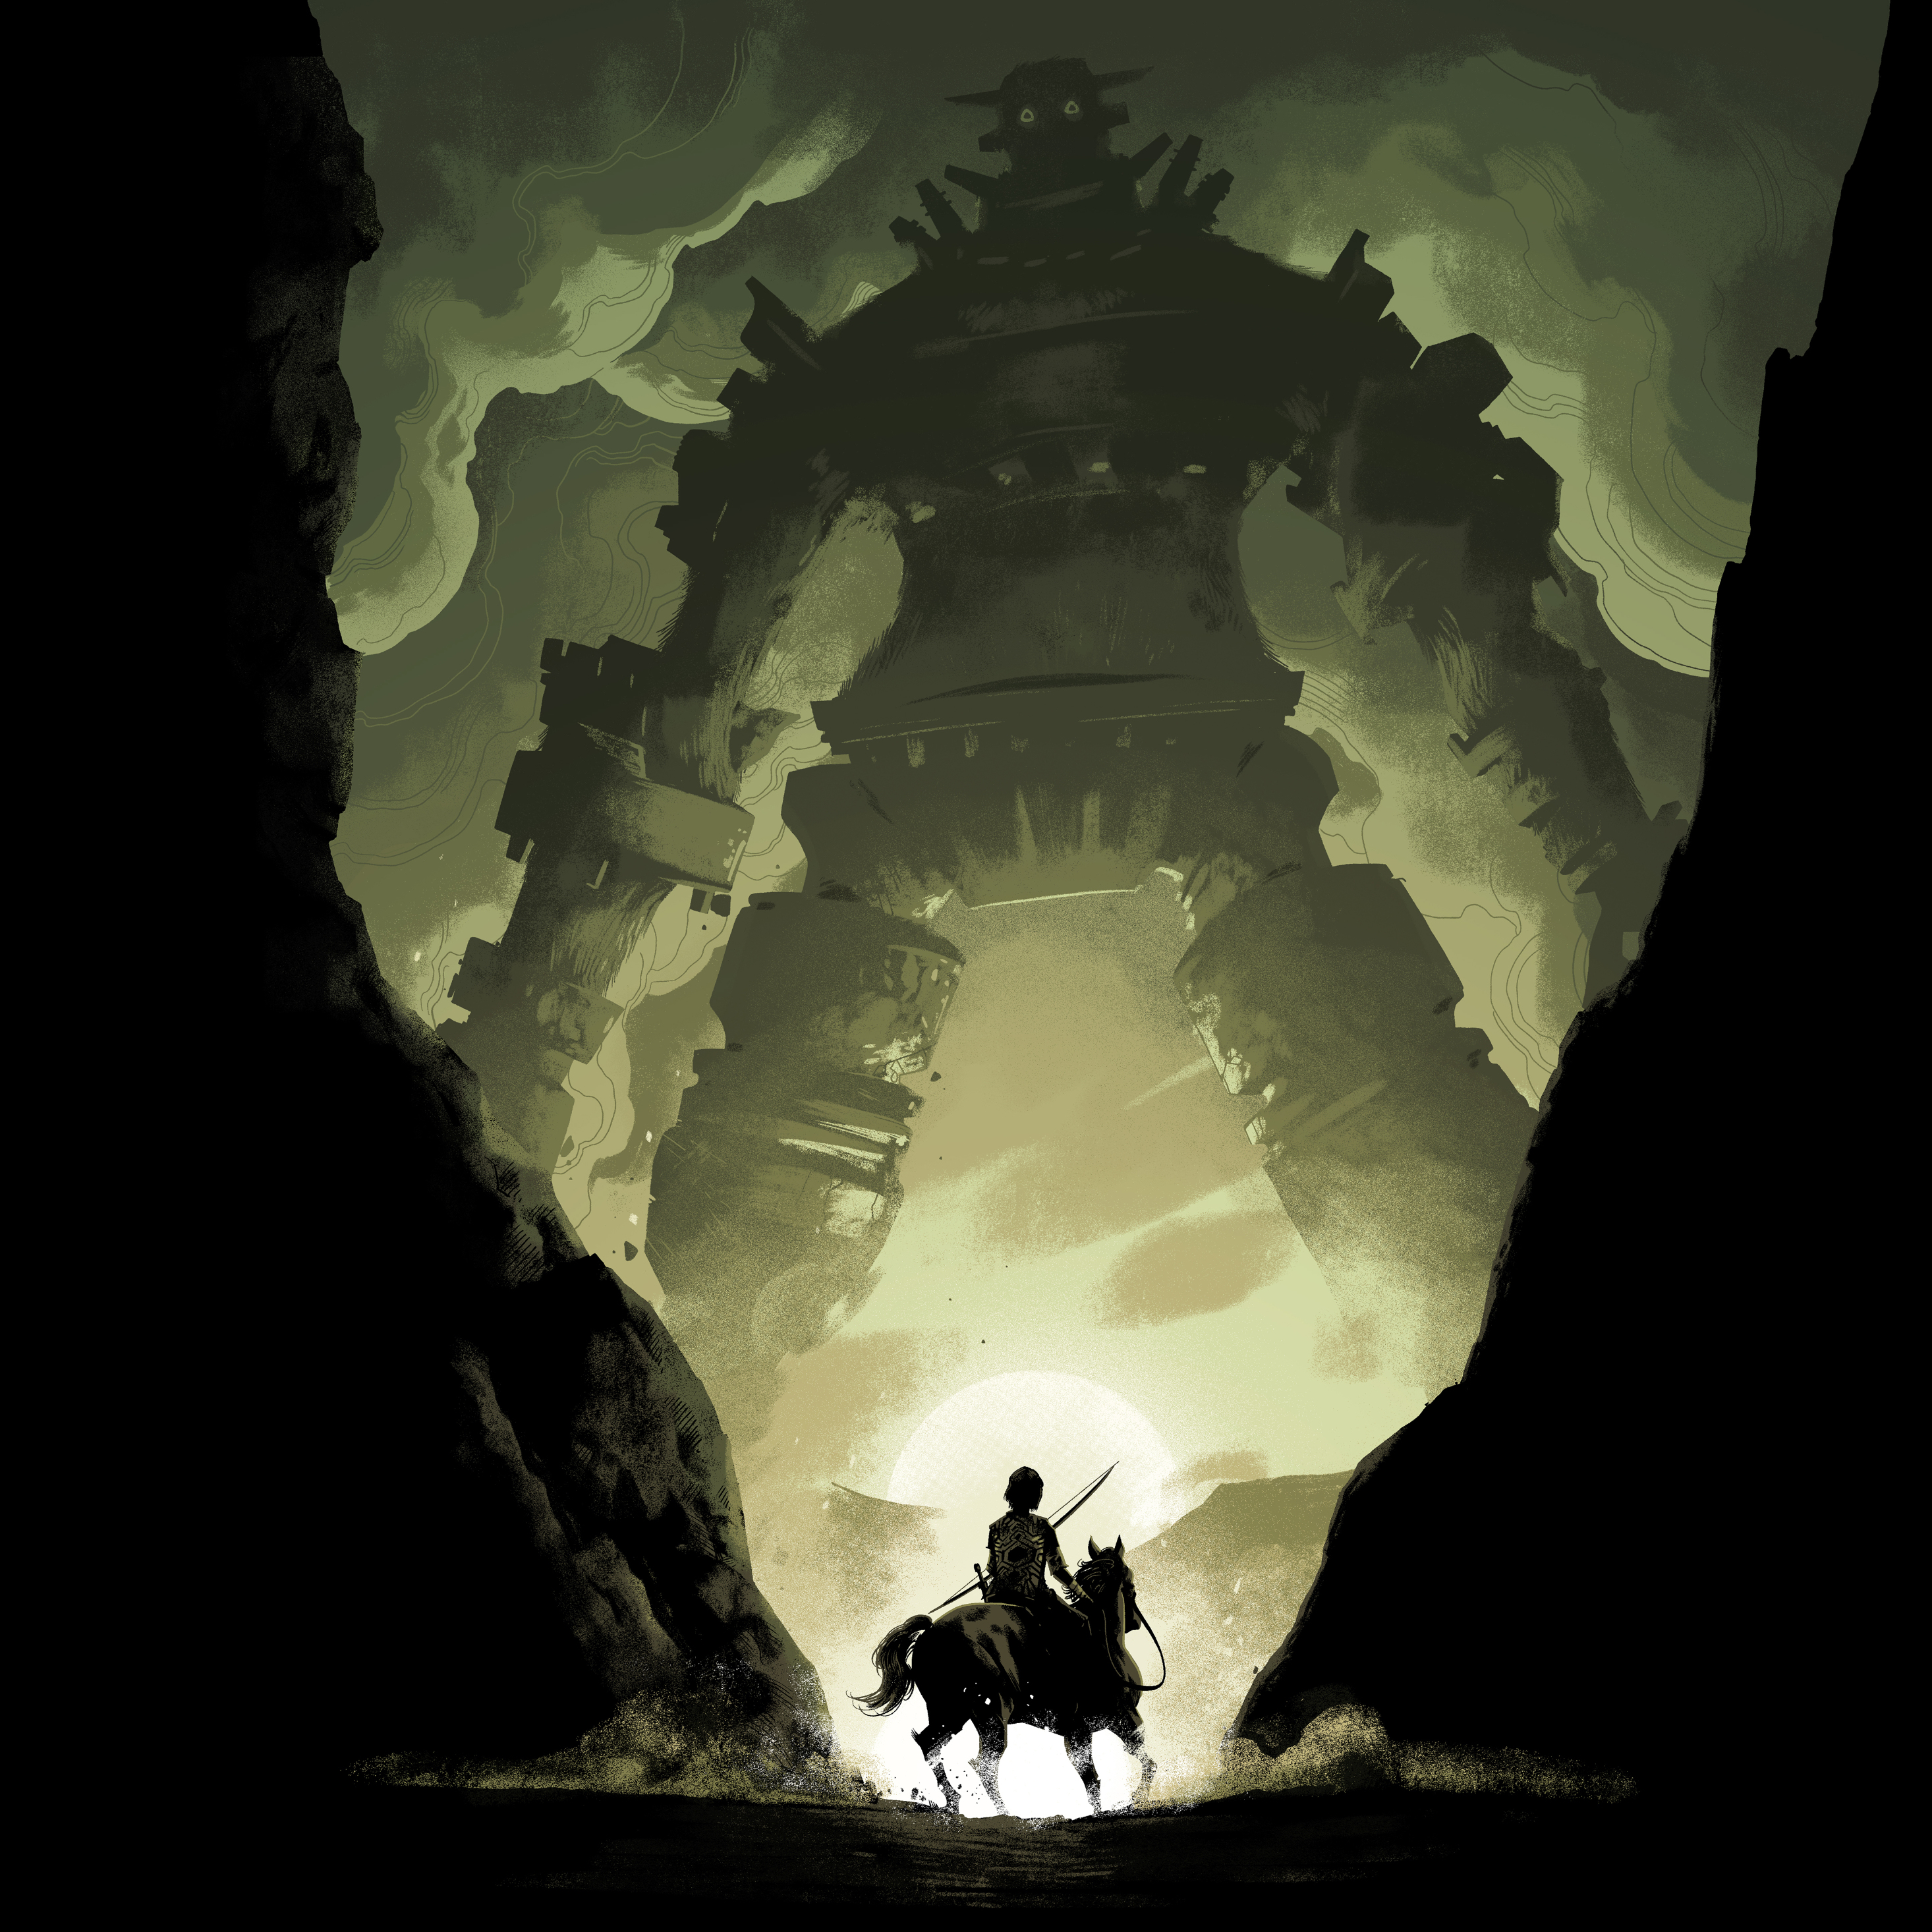 2932x2932 Shadow Of The Colossus Video Game Ipad Pro Retina